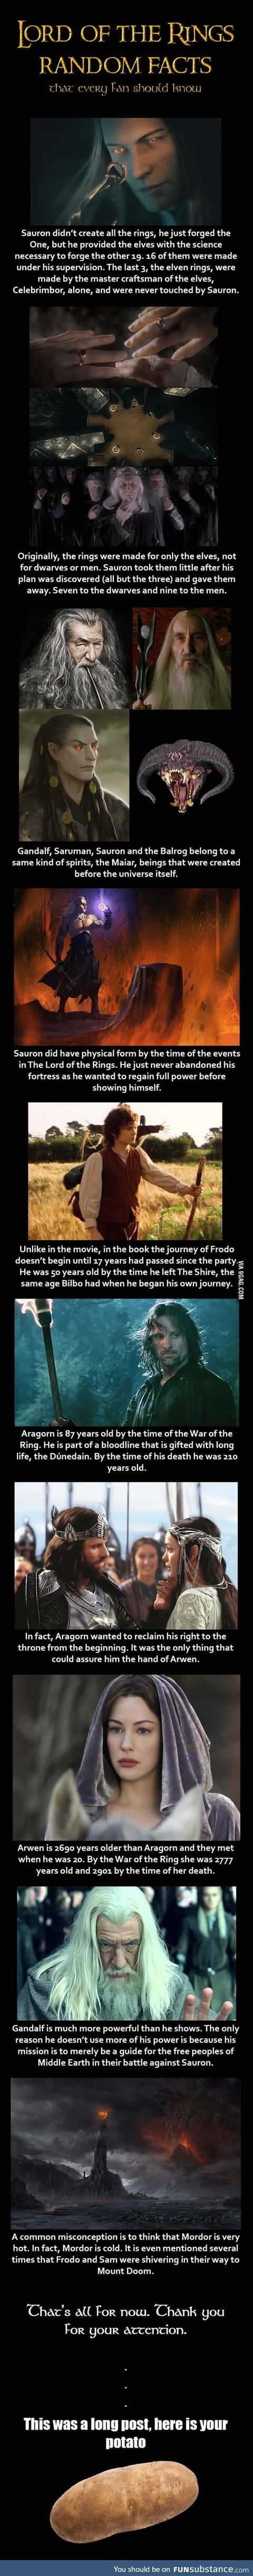 Just some random facts about LOTR